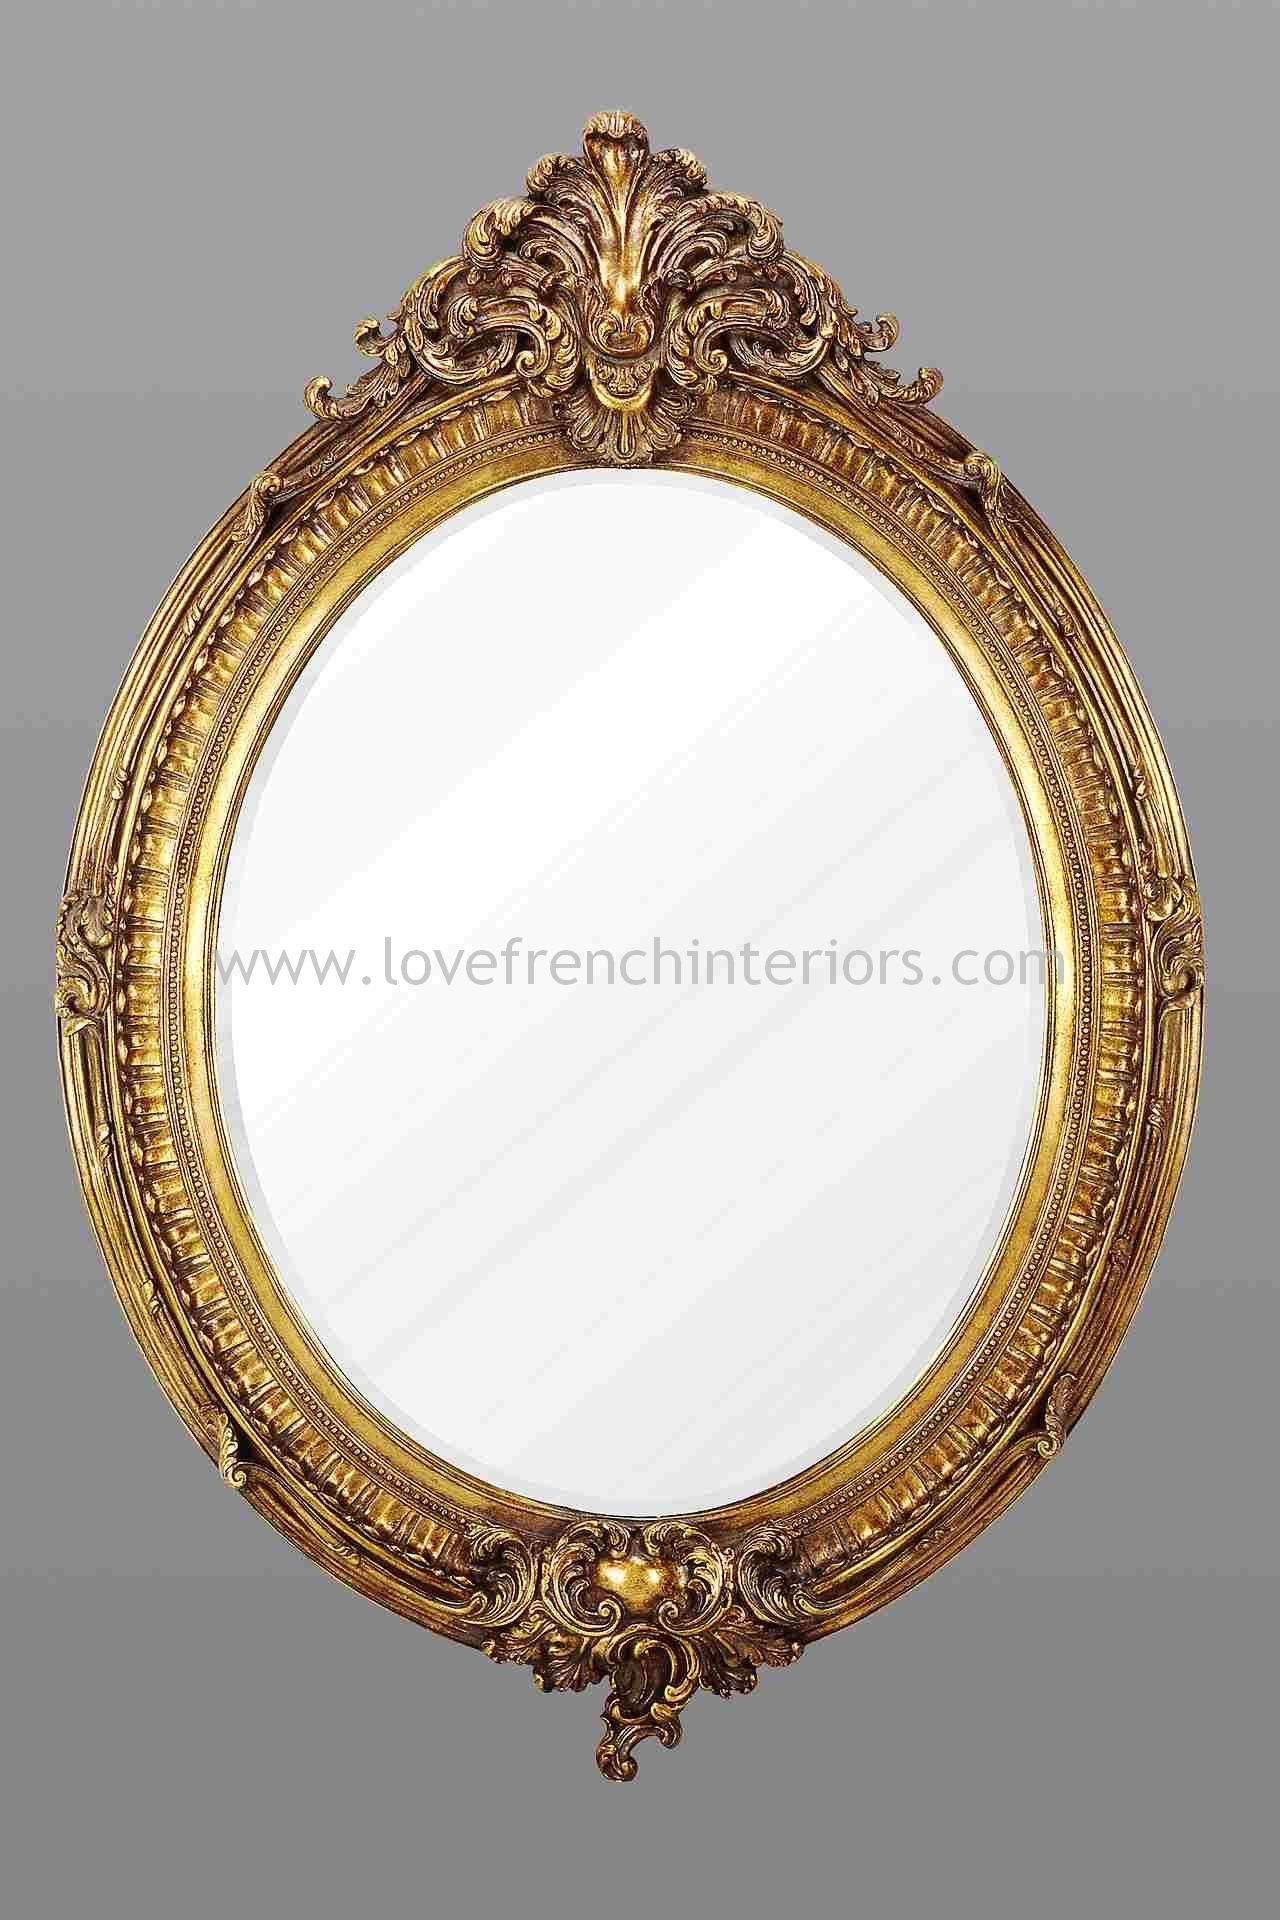 gold-oval-french-mirror-1027-p.jpg (1280×1920) | Mirror | Pinterest ...